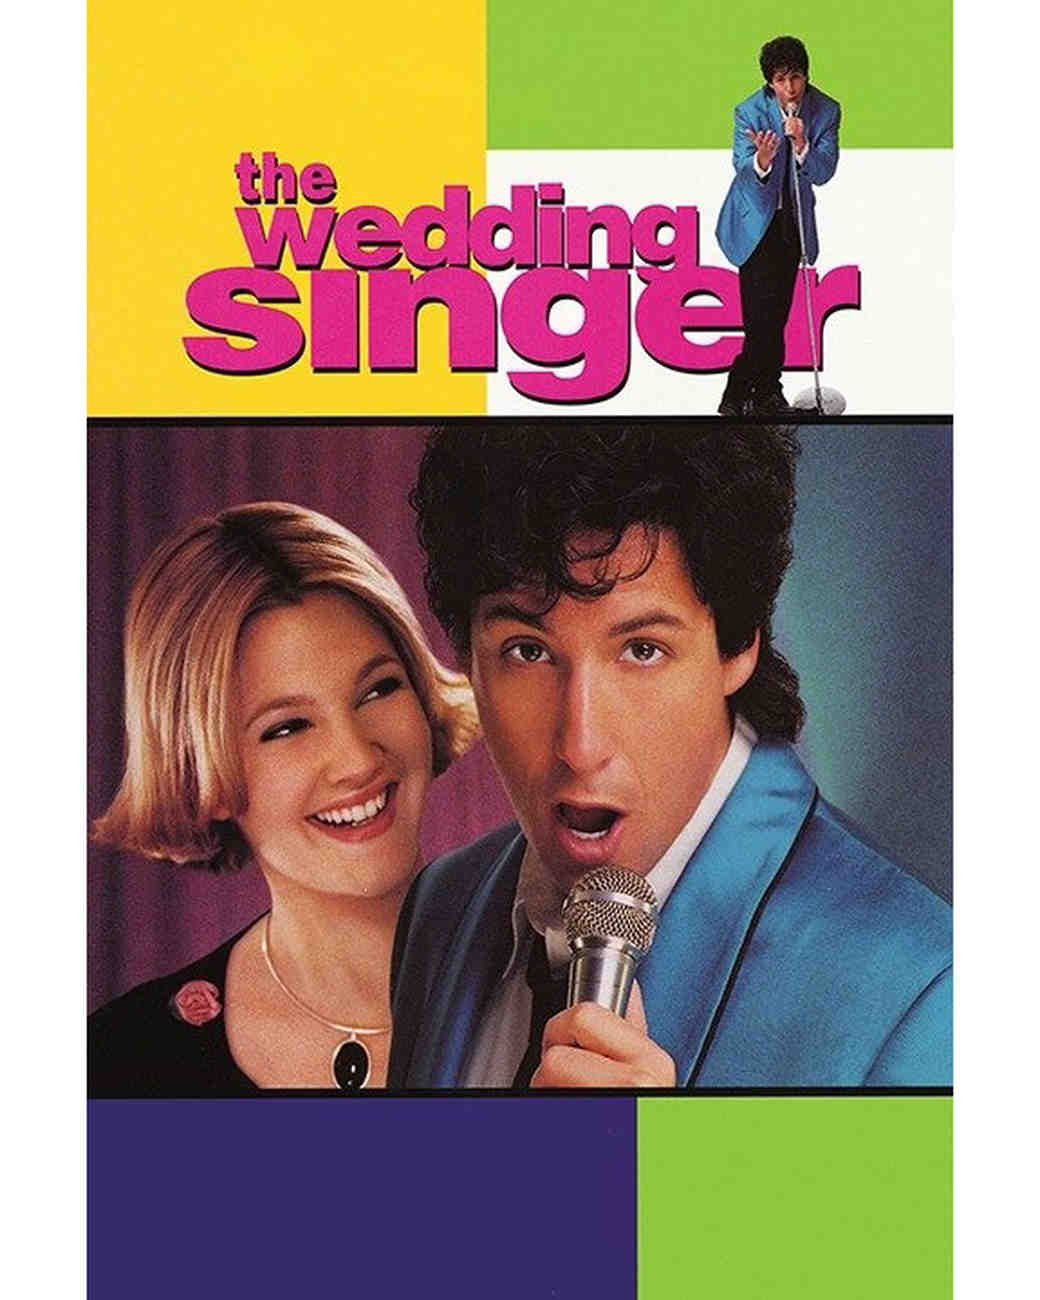 wedding-movies-the-wedding-singer-1115.jpg